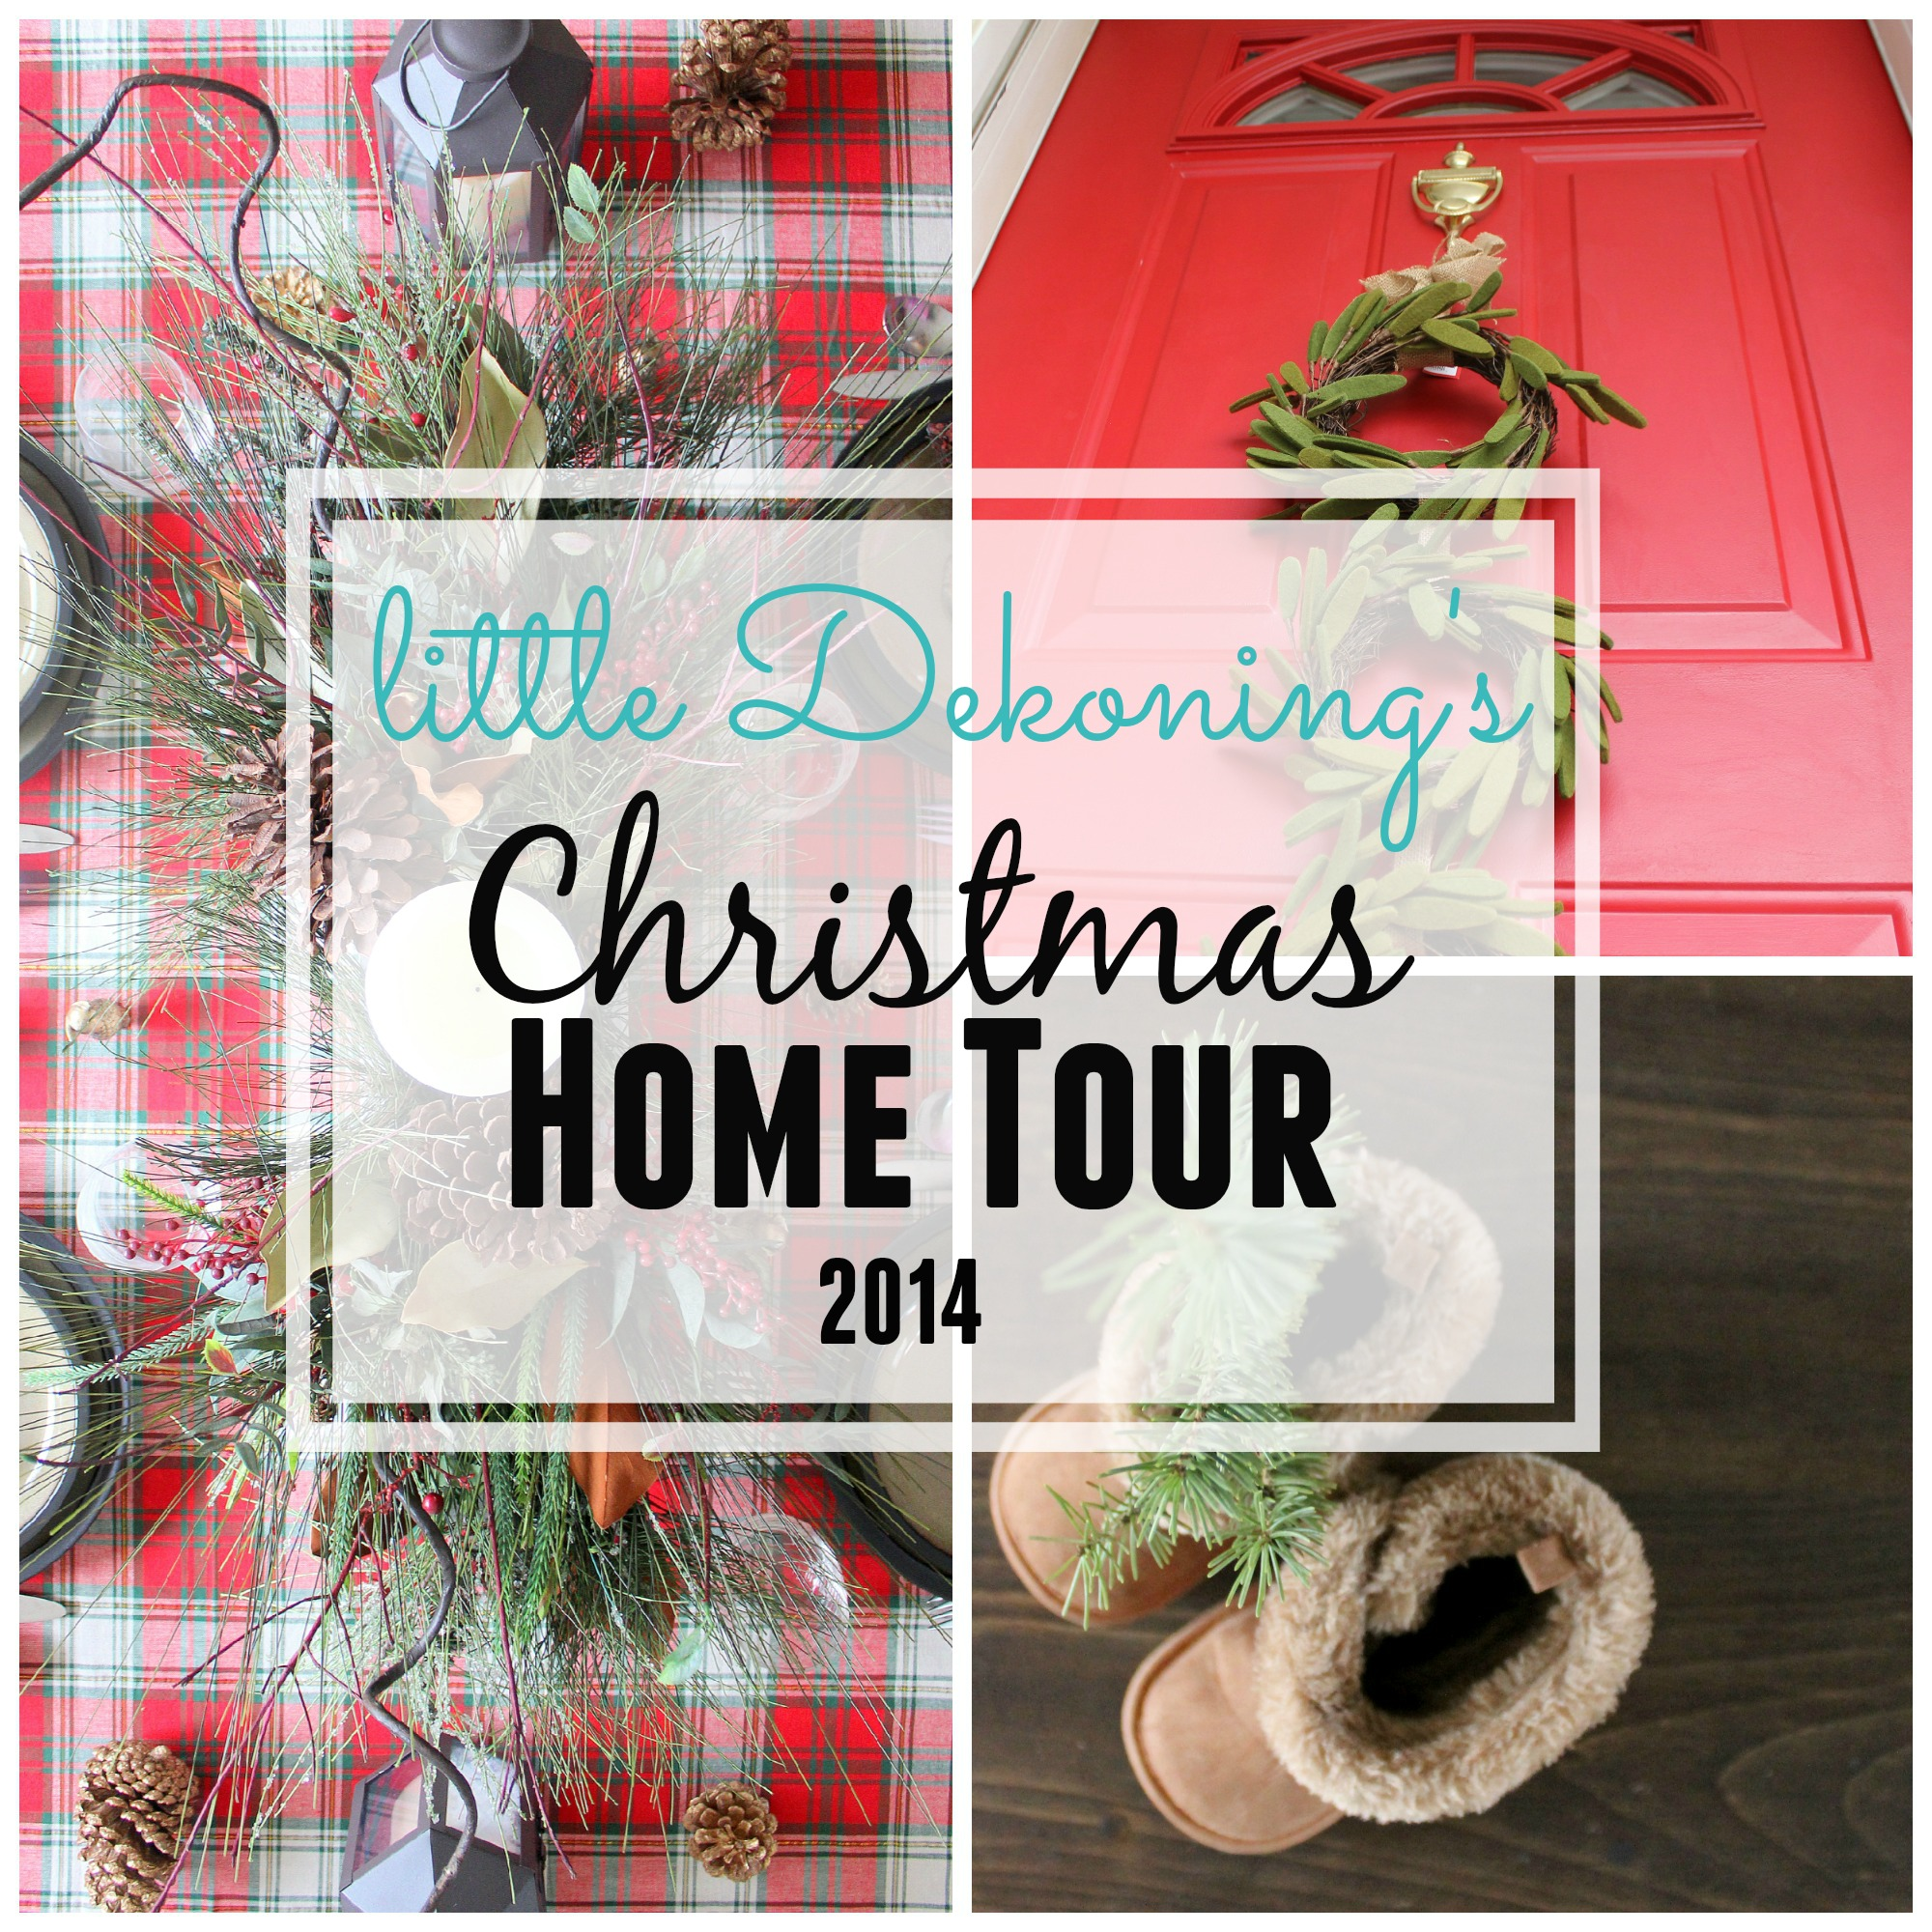 Our Diy House 2014 Home Tour: Little Dekonings